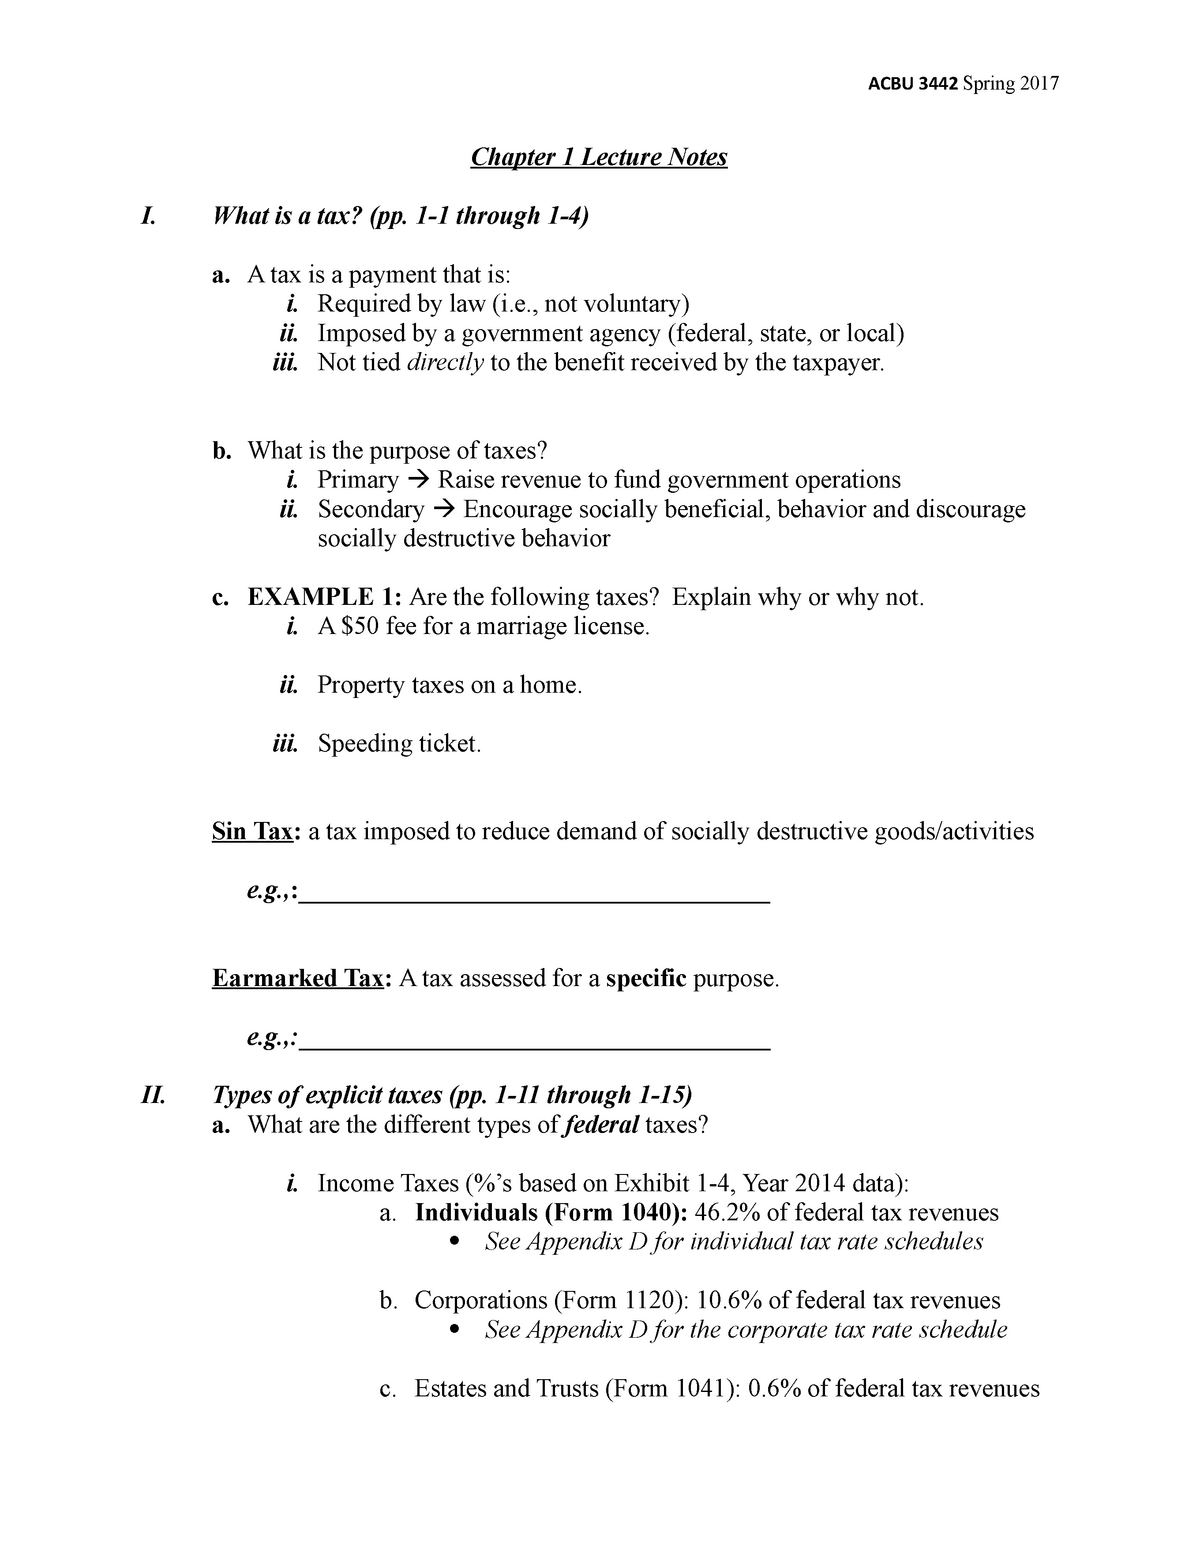 Chapter 1 Student Notes - ACBU 3442: Indvdl & Business